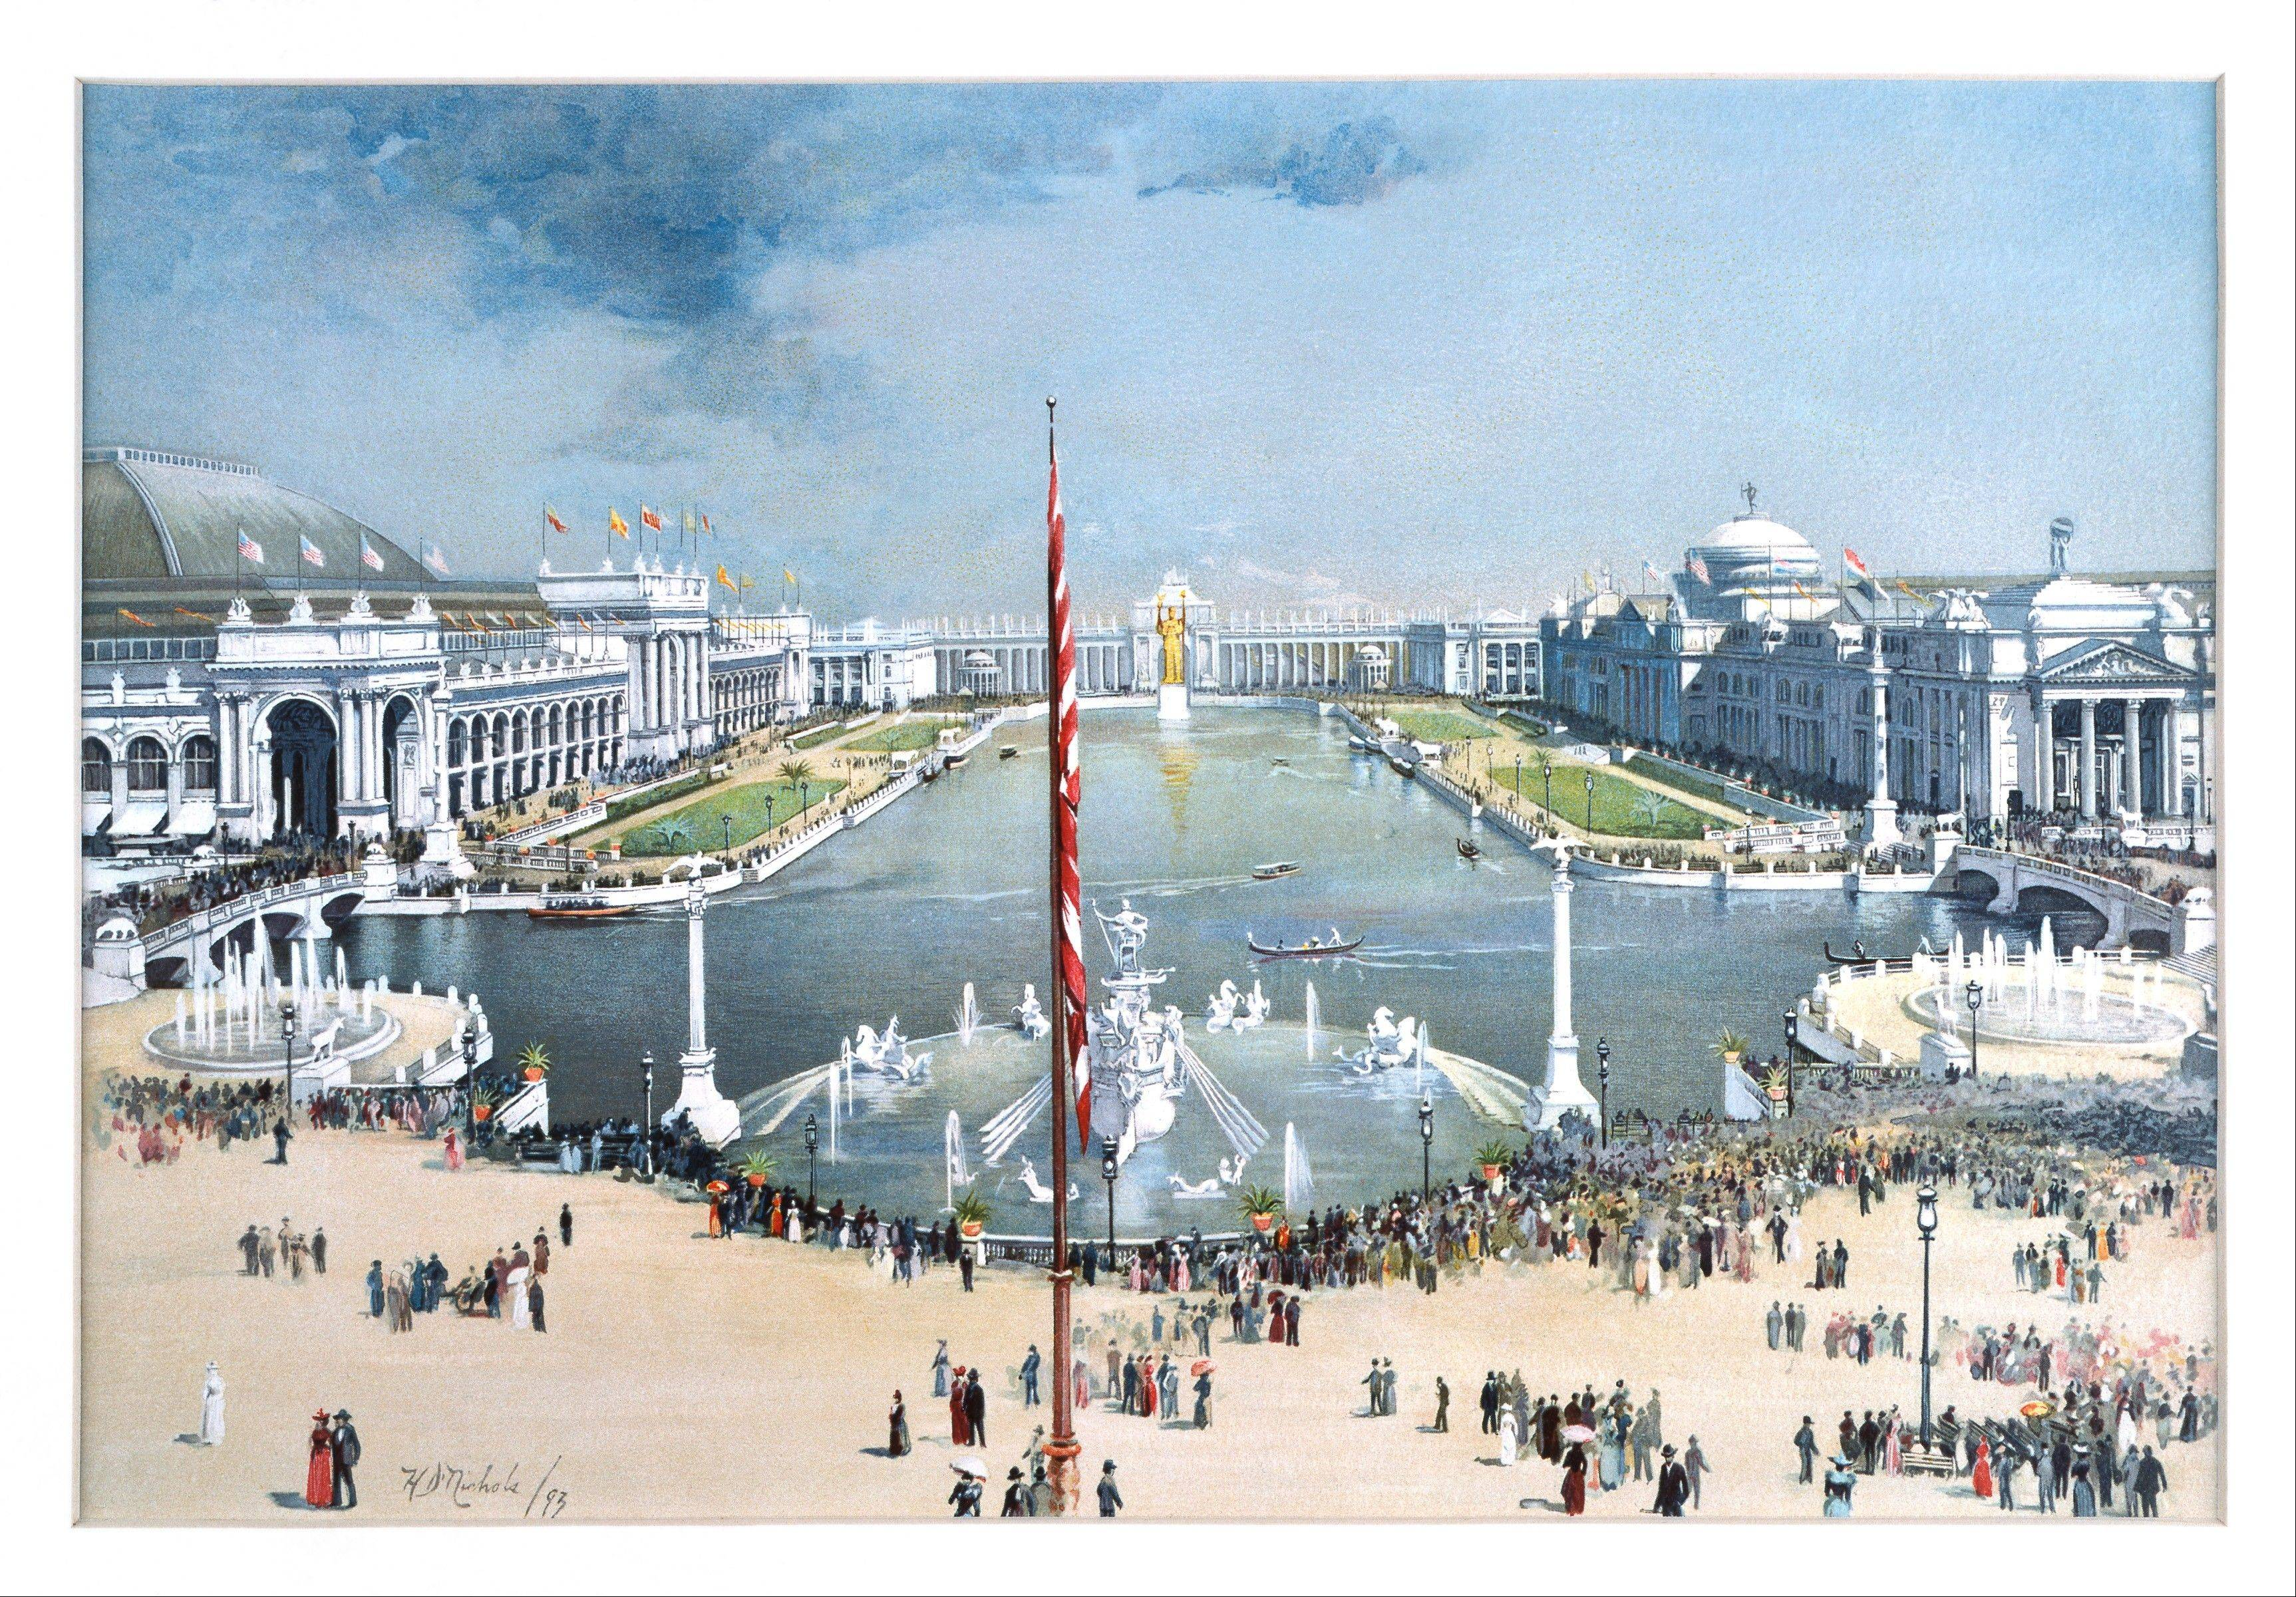 The 1893 World's Fair covered 630 acres in Chicago's Jackson Park and the Midway Plaisance -- a narrow strip of land designated as an amusement area.